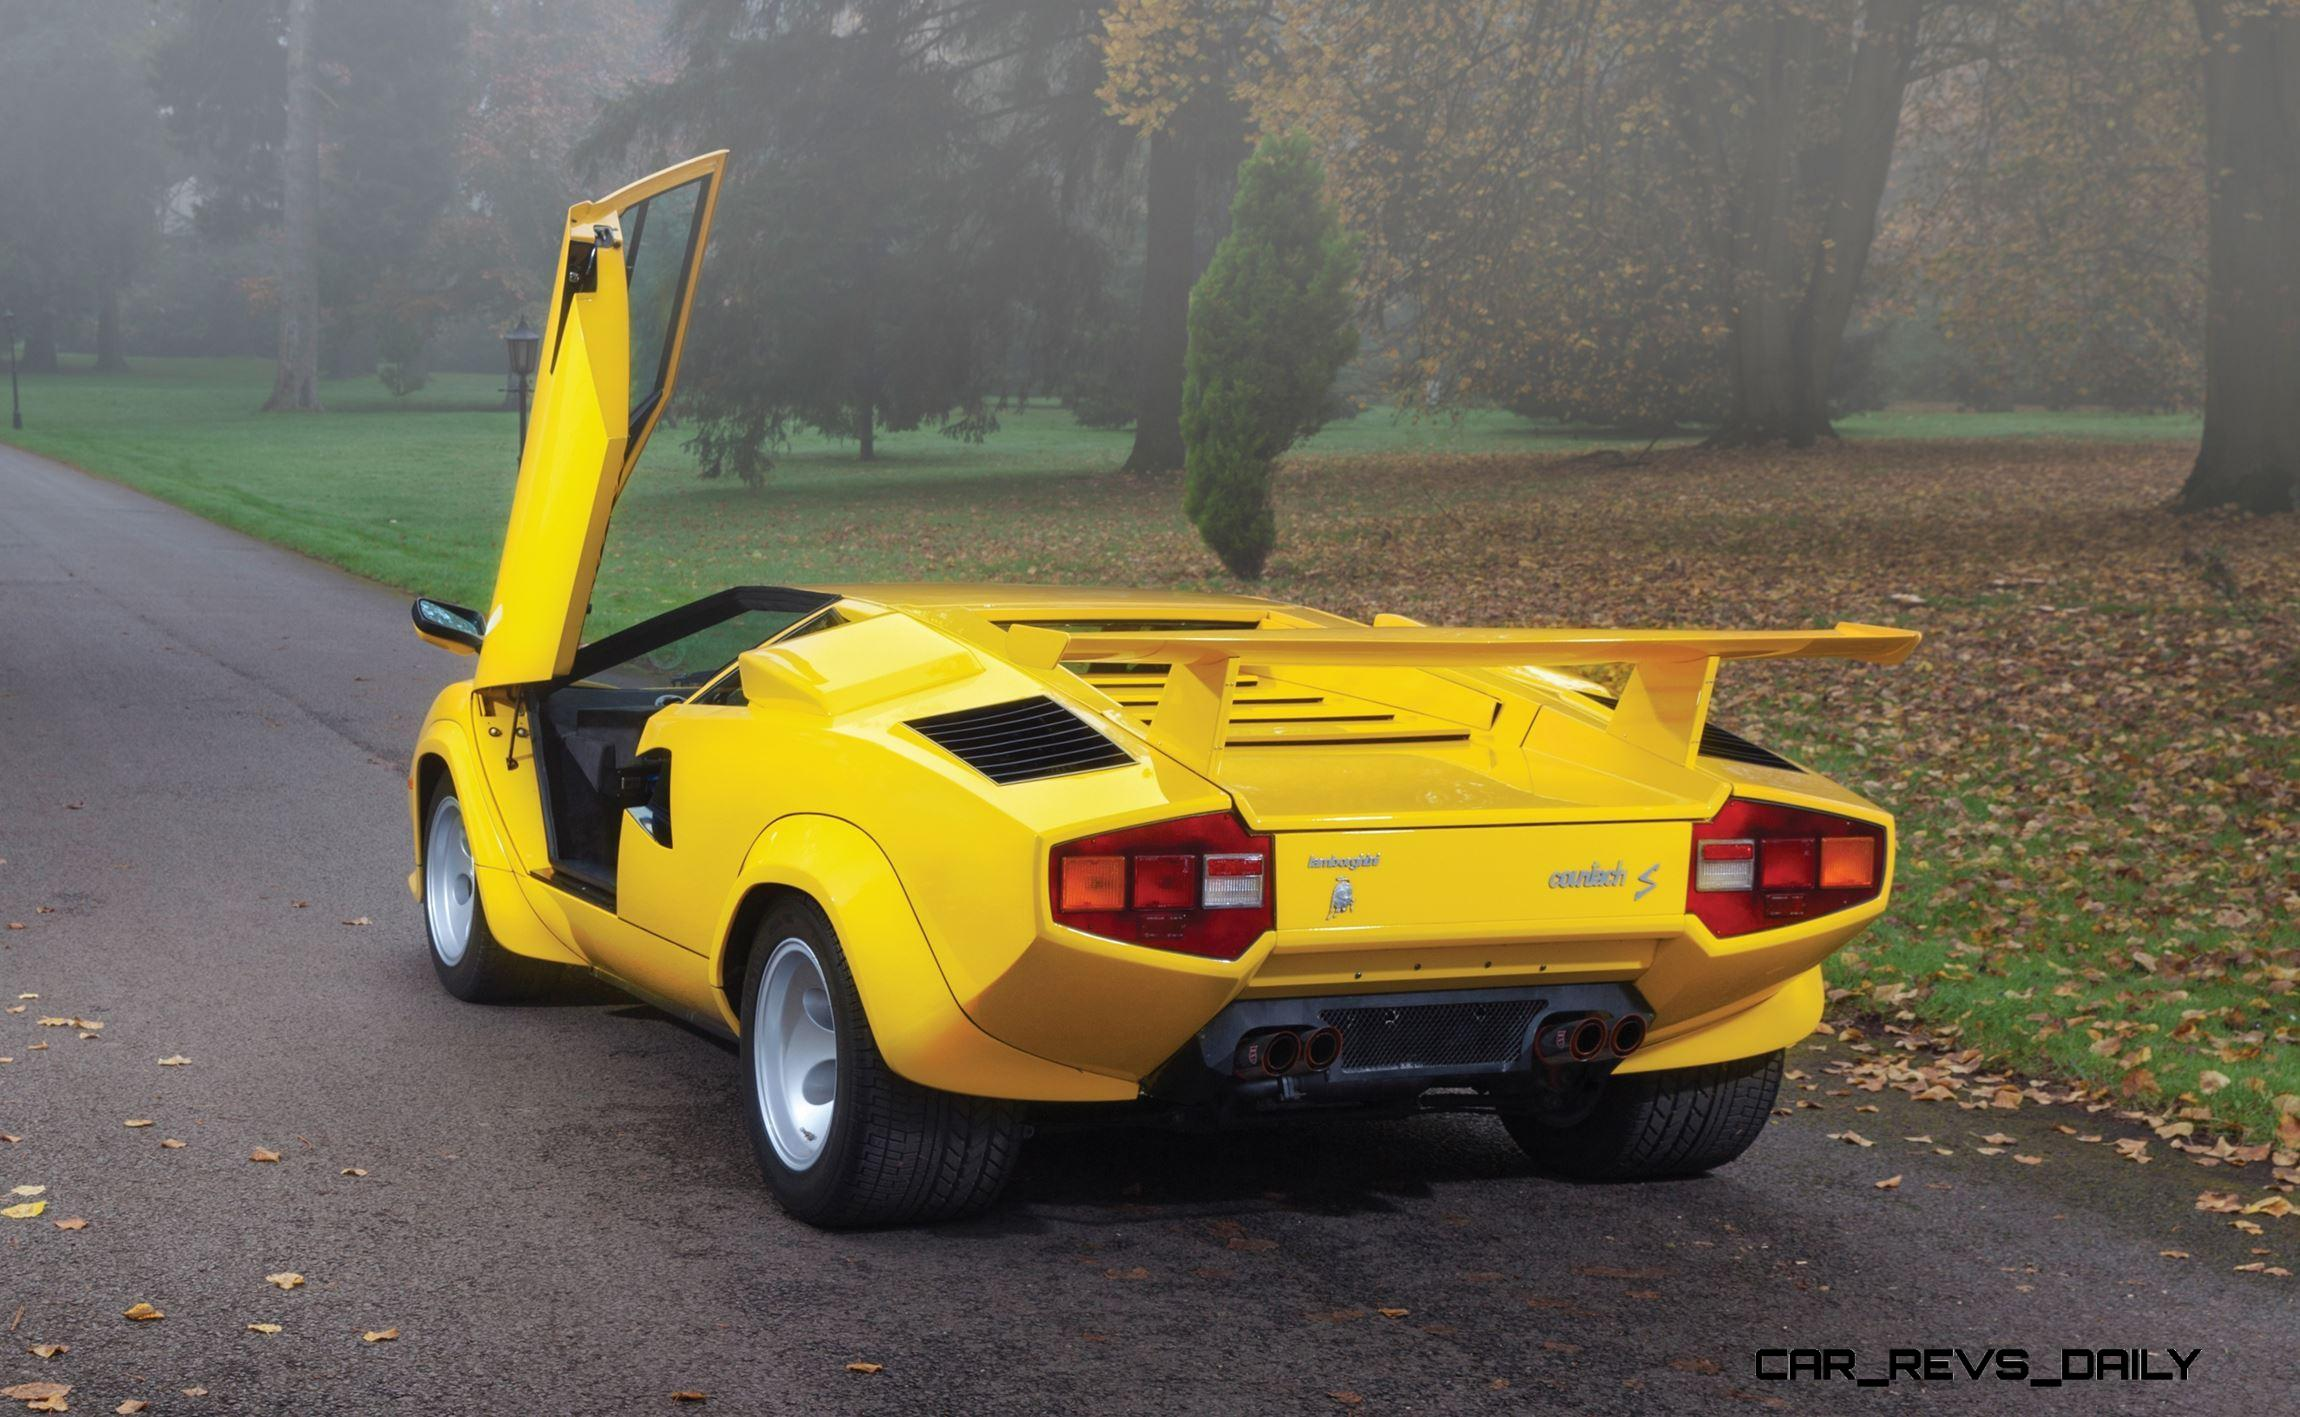 Rm Paris 2016 1981 Lamborghini Countach Lp400s Series Iii In Iconic Sunflower Yellow